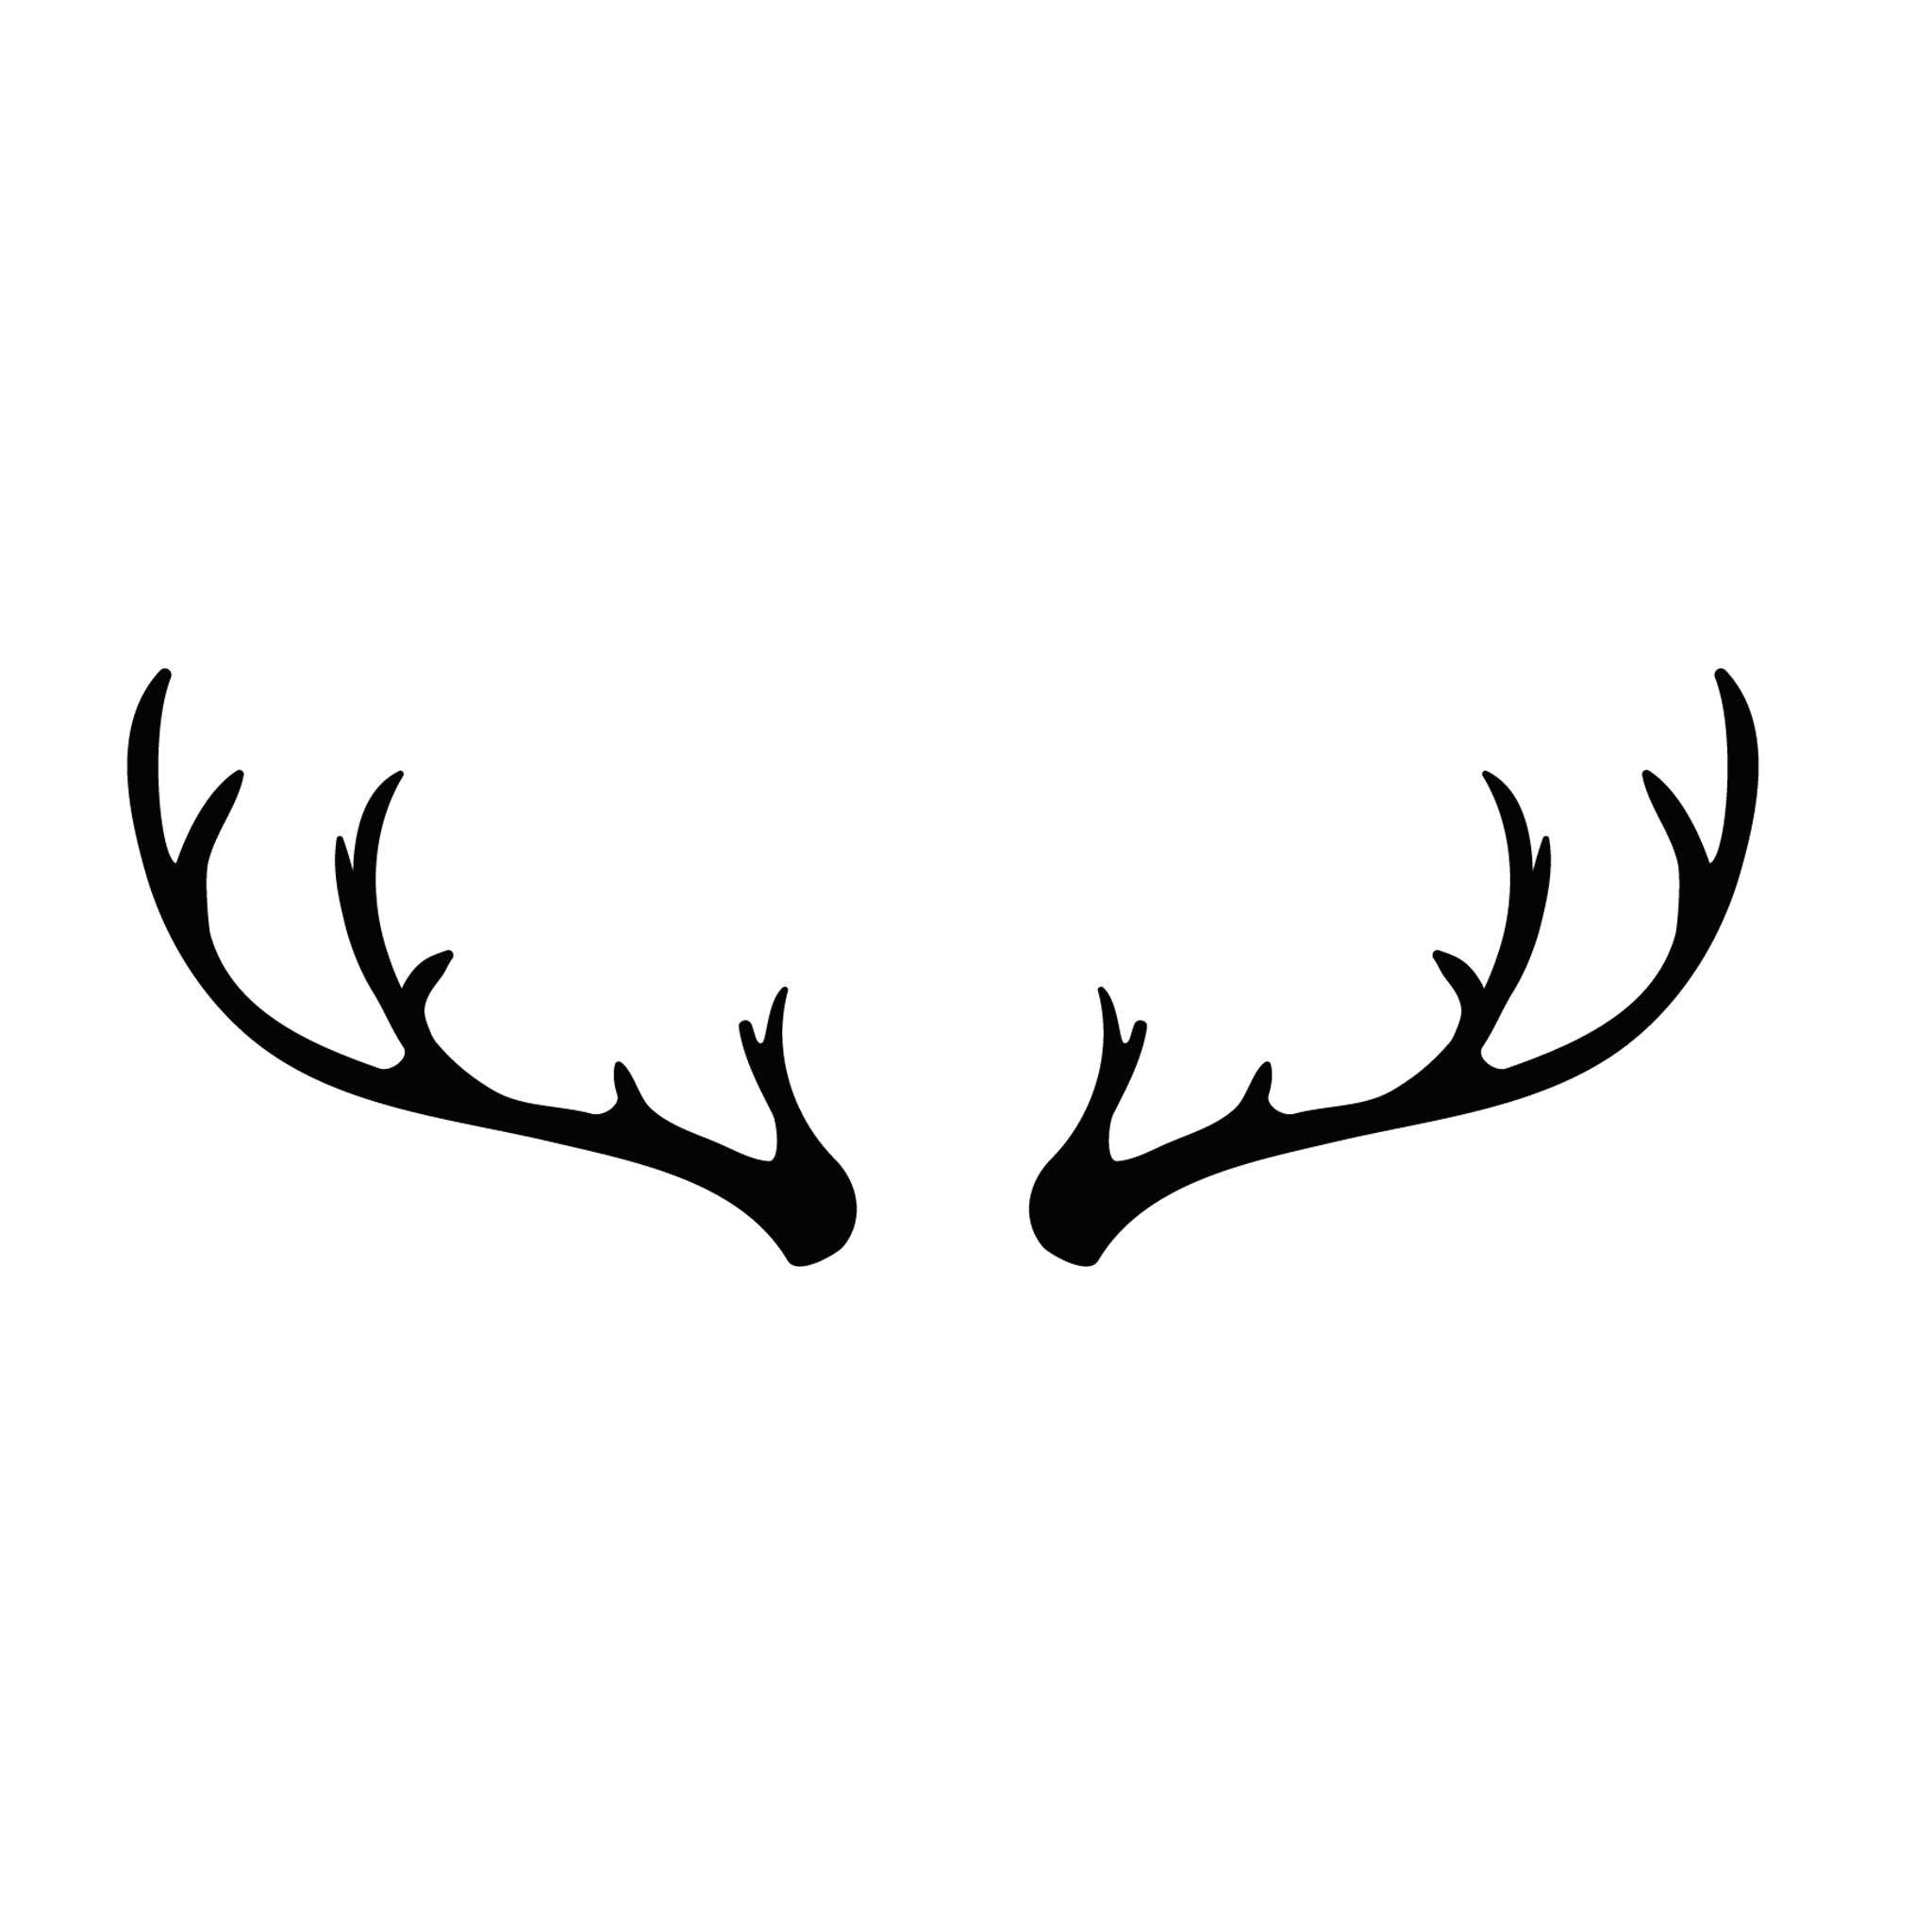 Antlers_Min Temporary Tatoo Design. Tags: Minimal, Black and White, Nature, Animals